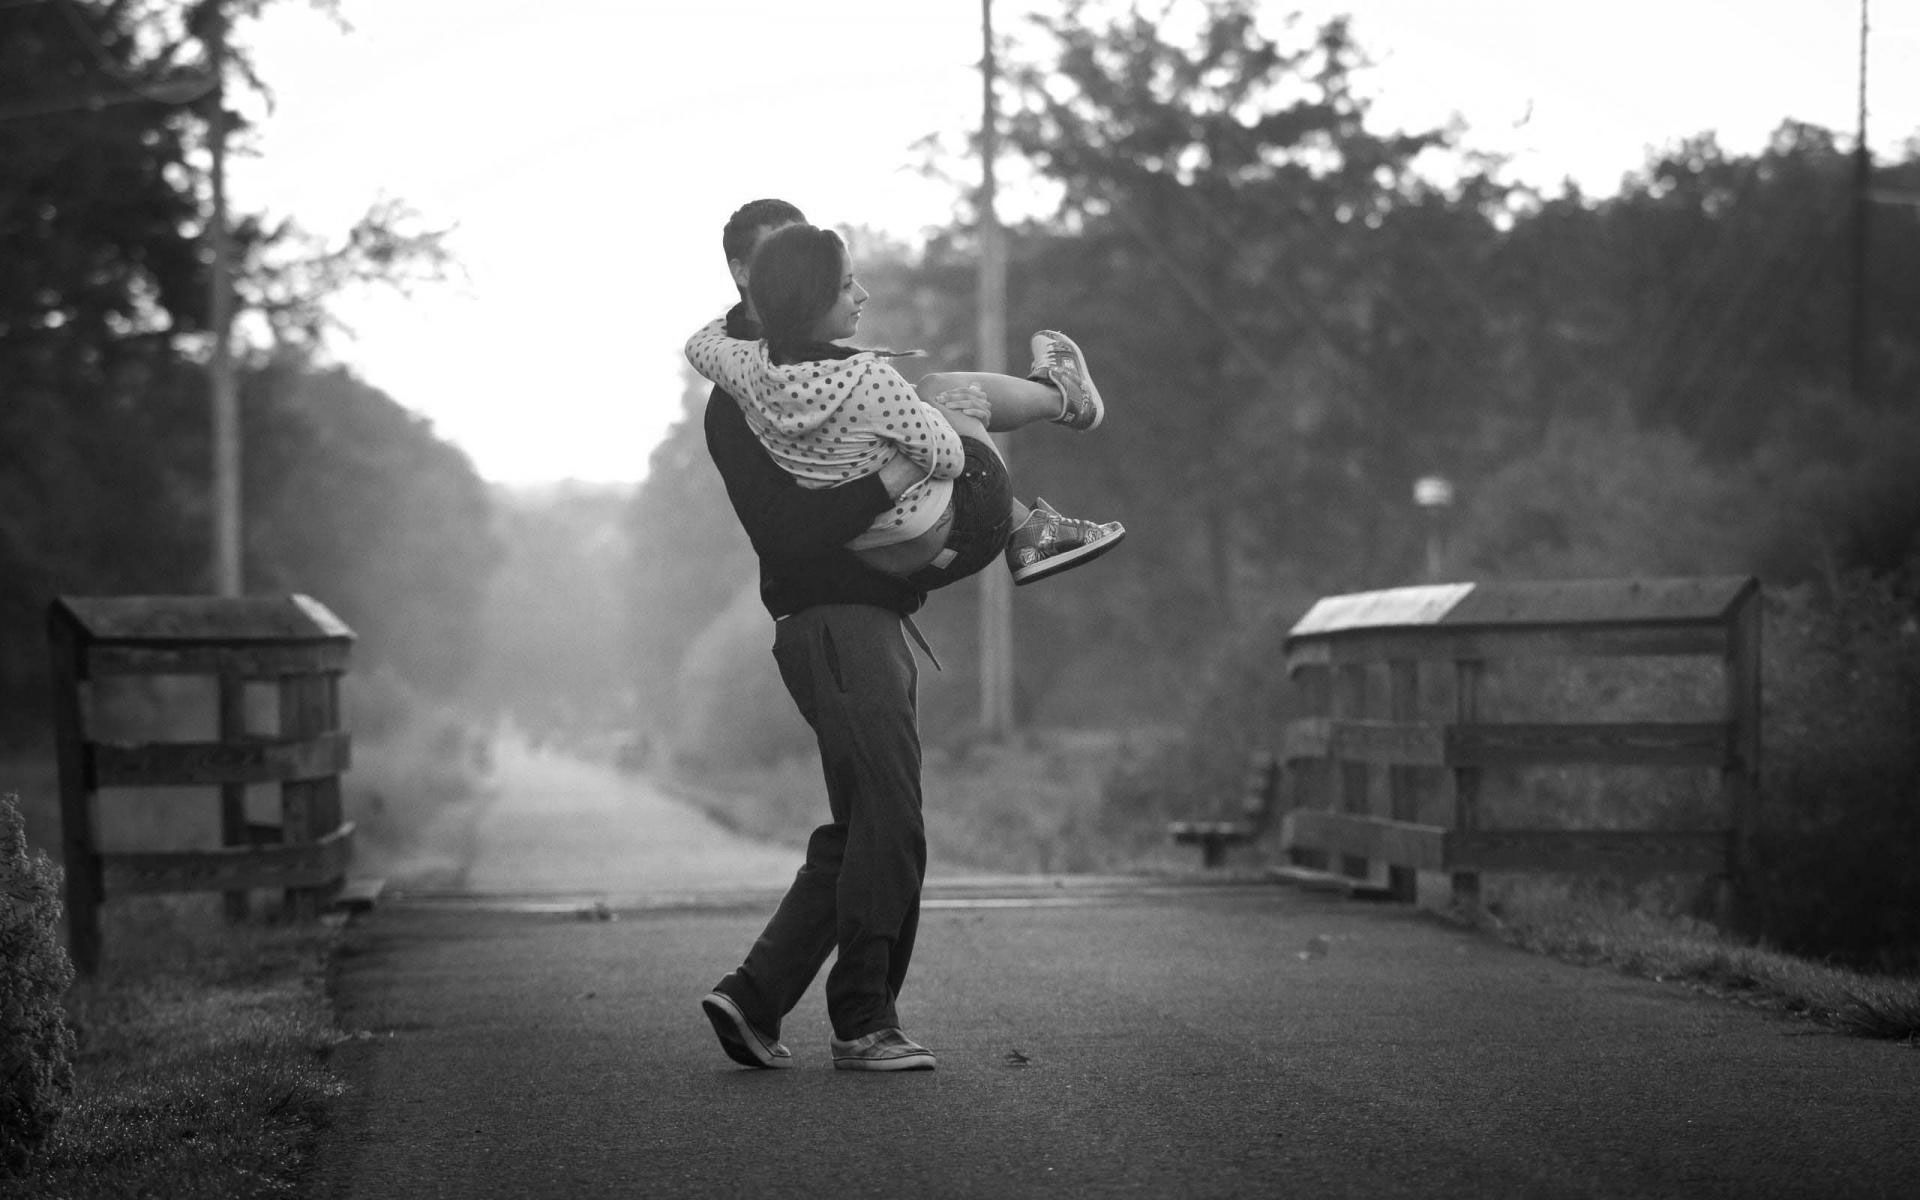 Very Sad Love couple Wallpaper : Love couple Black and white HD wallpaper Romantic & Sad couple Wallpapers Pinterest couple ...